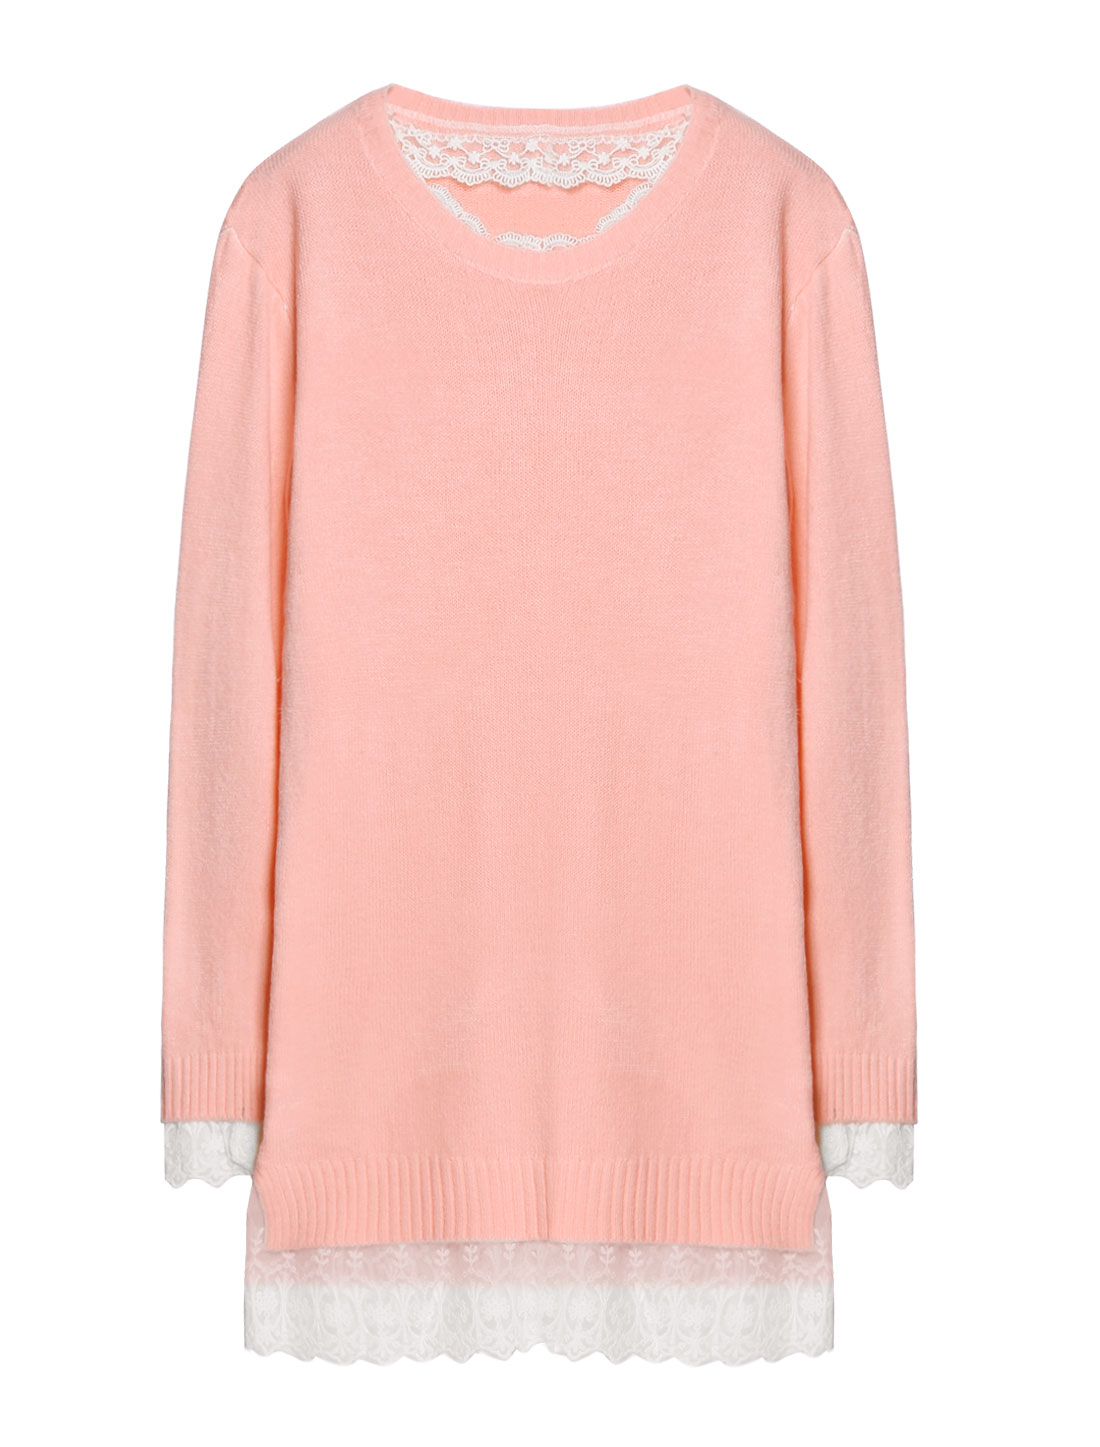 Woman Mesh Crochet Panel Split Sides Tunic Knit Shirt Pink XS